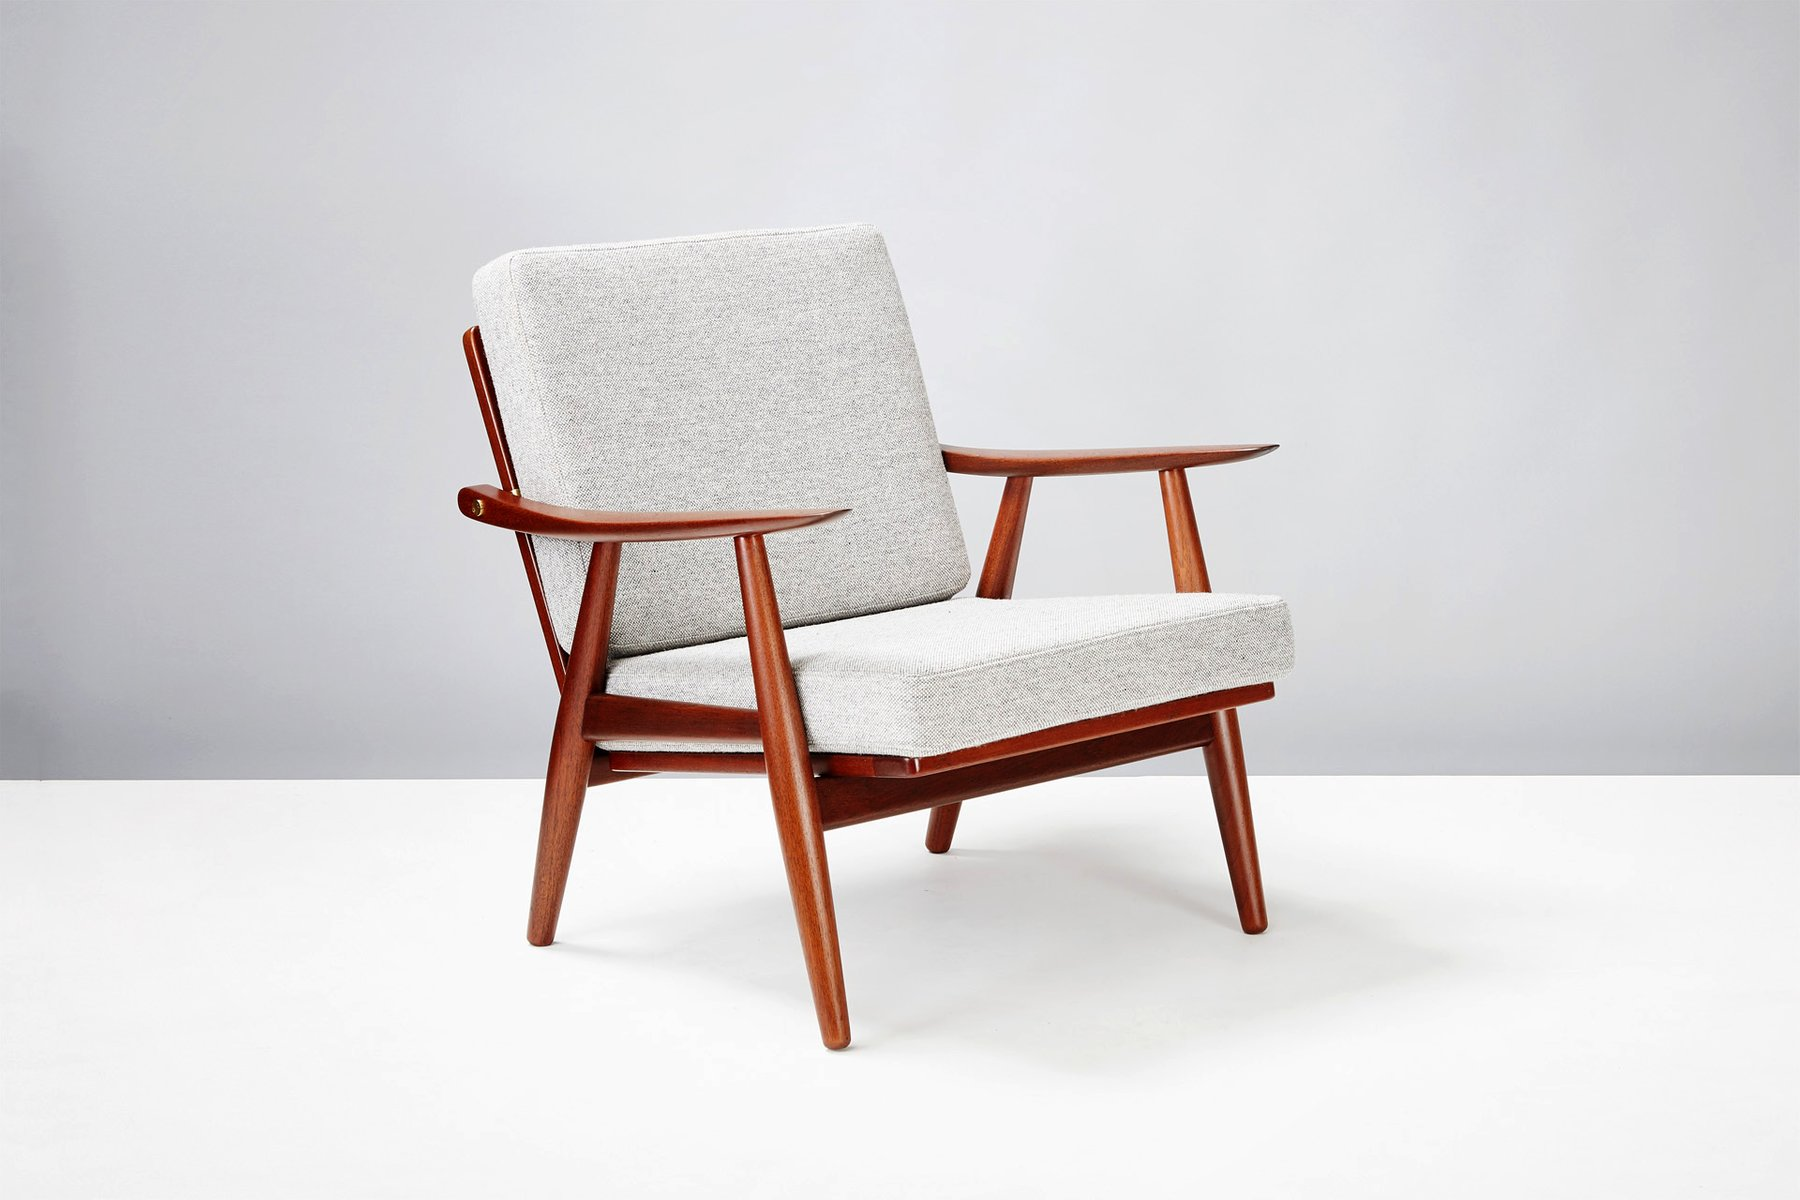 GE 270 Chairs by Hans Wegner for Getama, 1956 for sale at Pamono